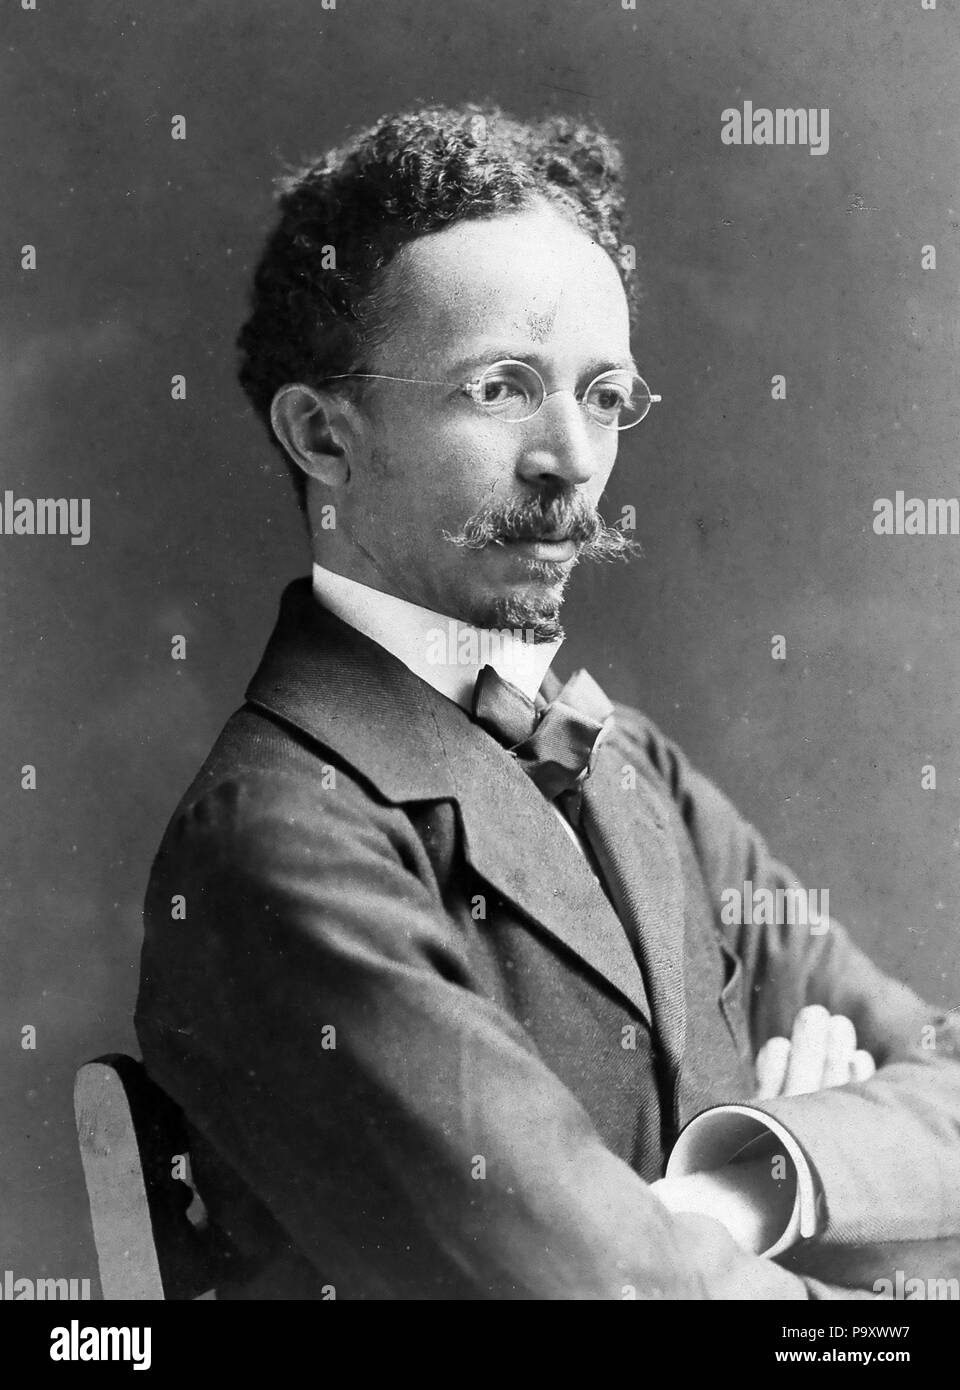 HENRY OSSAWA TANNER (1859-1937) American artist photographed in 1907 by Frederick Gutekunst Stock Photo